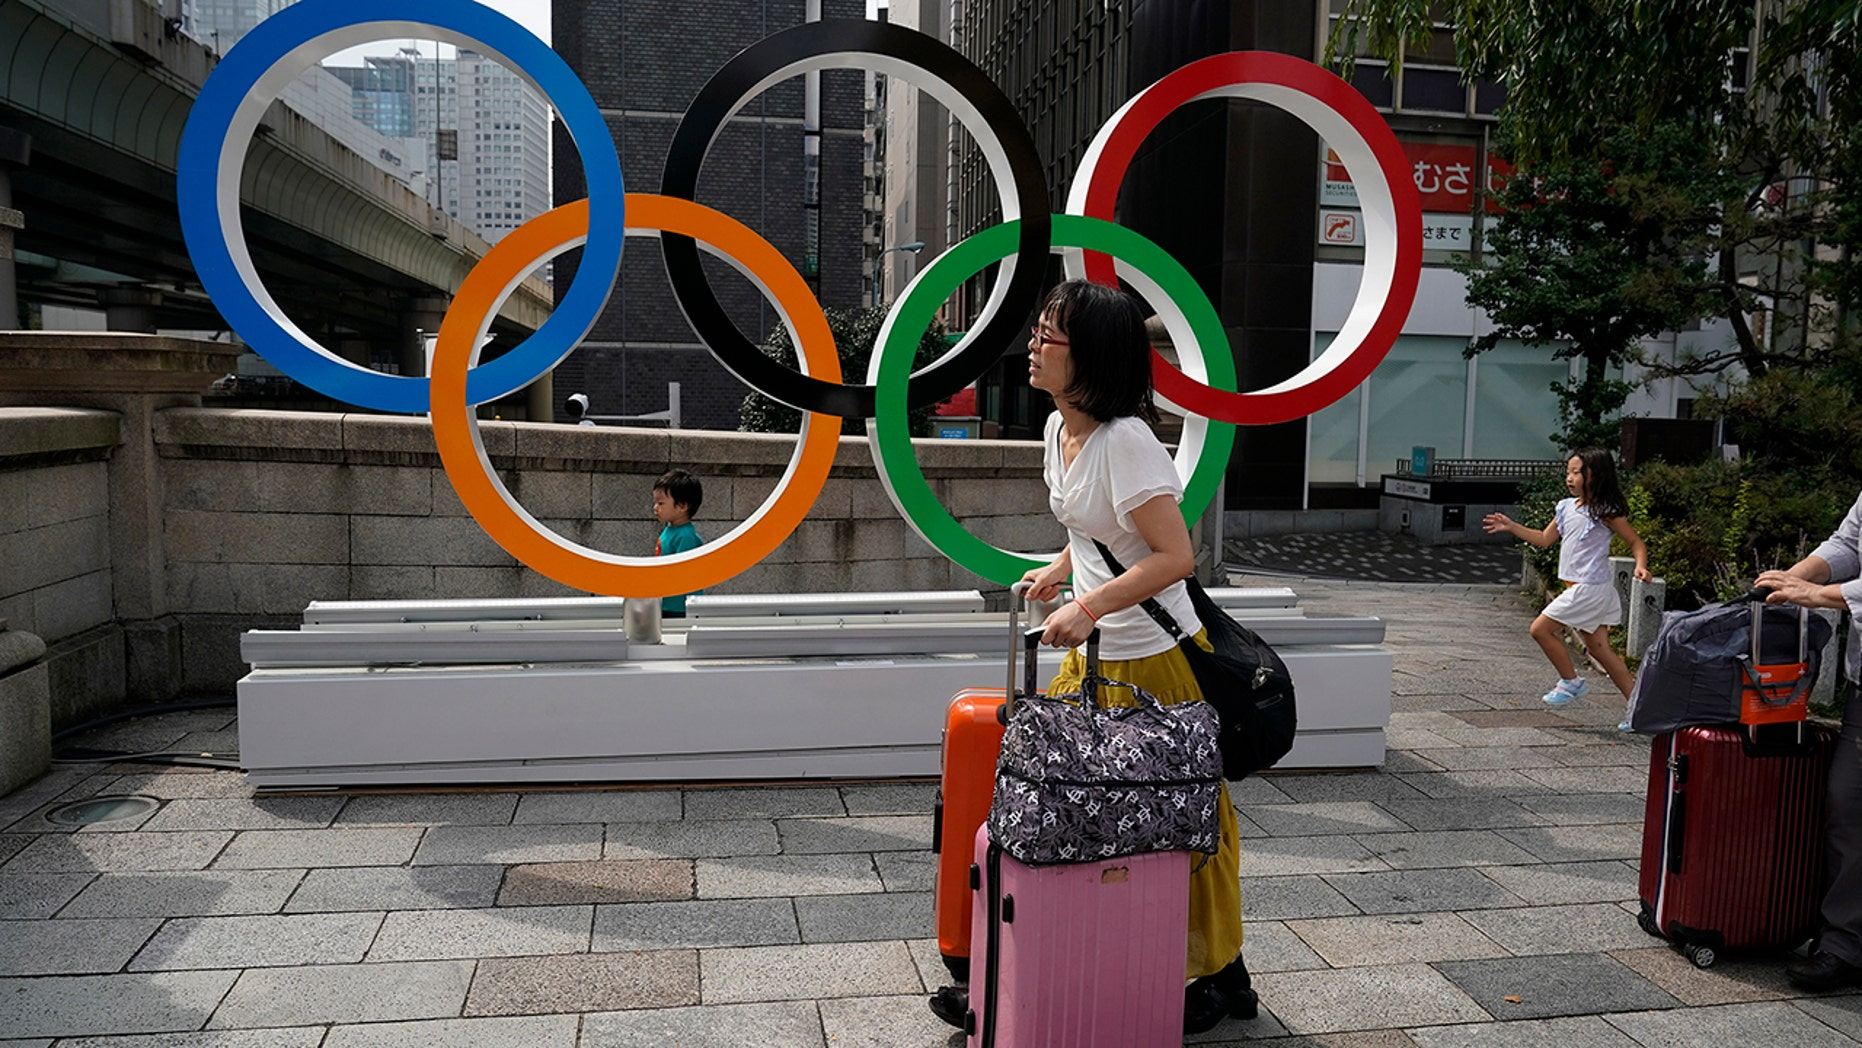 "FILE - In this August 19, 2019, file photo, tourists are carrying their luggage along the Olympic rings in Tokyo. Disappointed Japanese received another photo of their participation in the Tokyo Olympics next year, when organizers placed about 1<div class=""e3lan e3lan-in-post1""><script async src=""//pagead2.googlesyndication.com/pagead/js/adsbygoogle.js""></script>